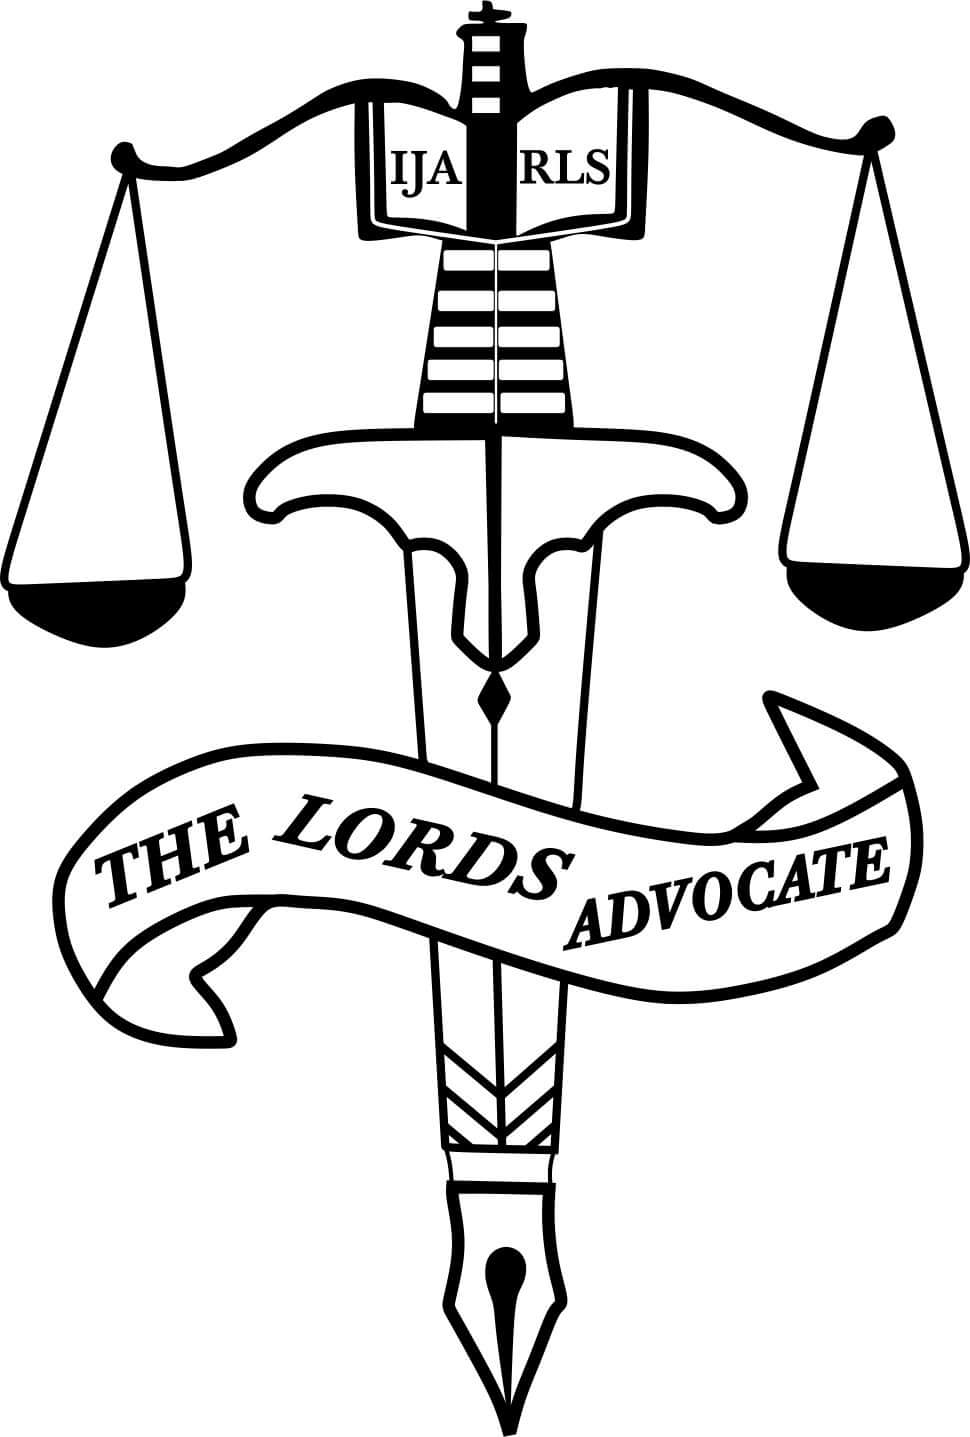 Call for Papers: The Lords Advocate, Volume 1 Issue 4